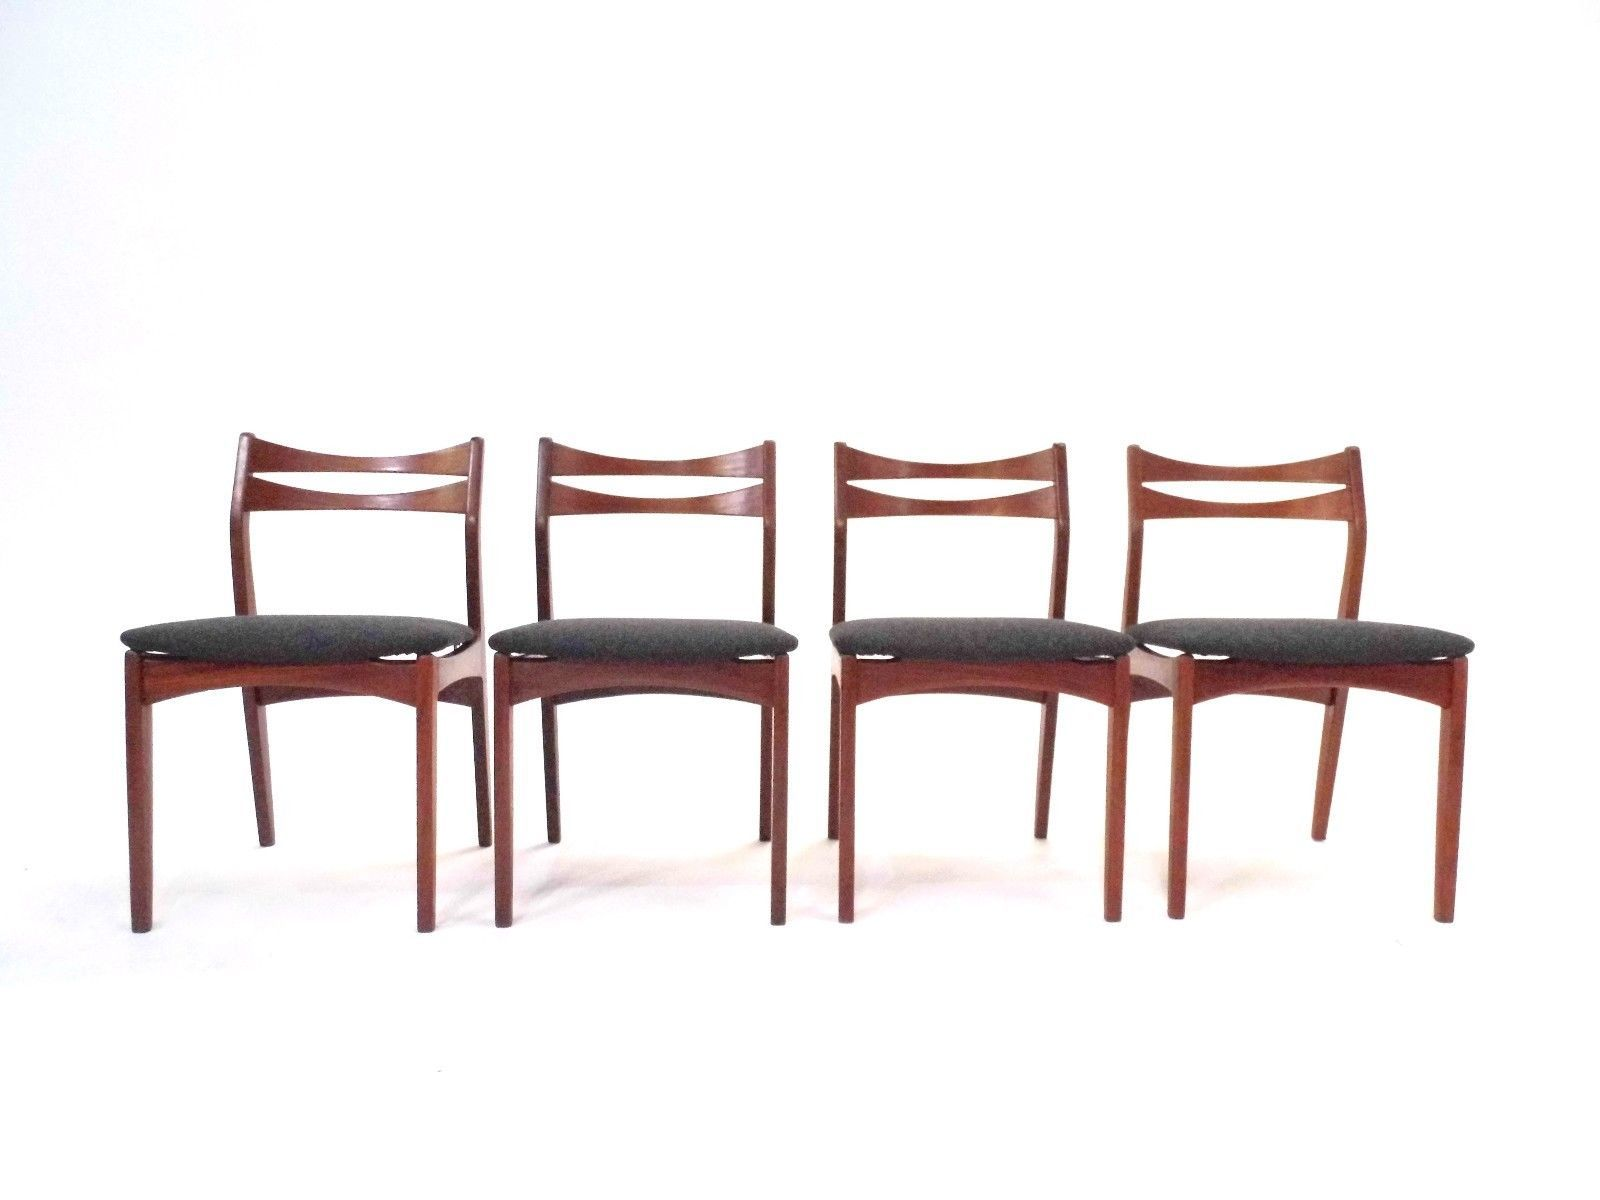 Danish teak camira charcoal grey dining chairs from g for G plan teak dining room chairs